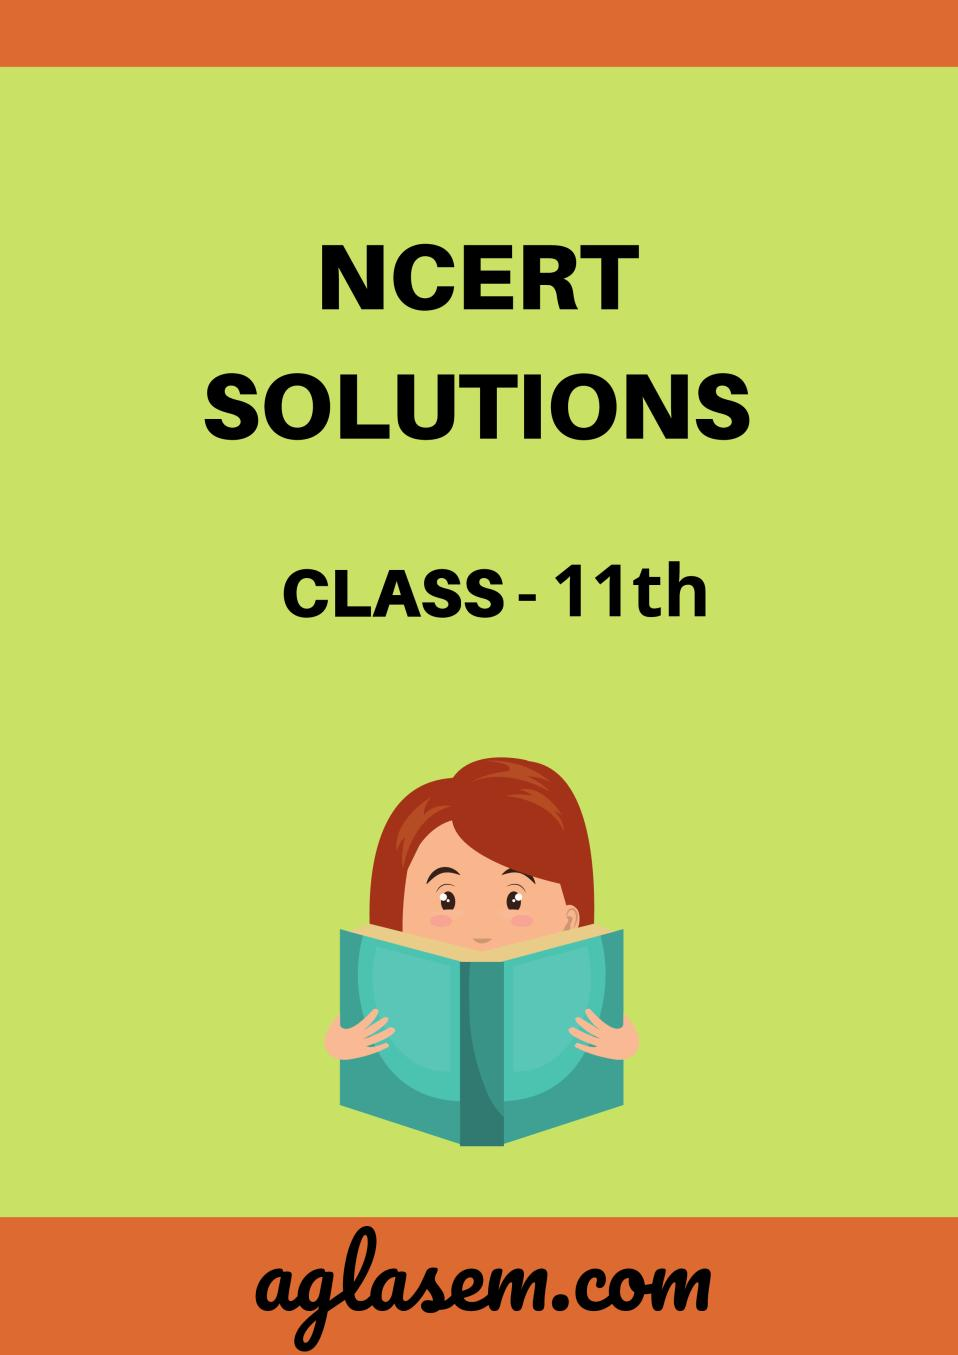 NCERT Solutions for Class 11 Biology Chapter 1 The living World